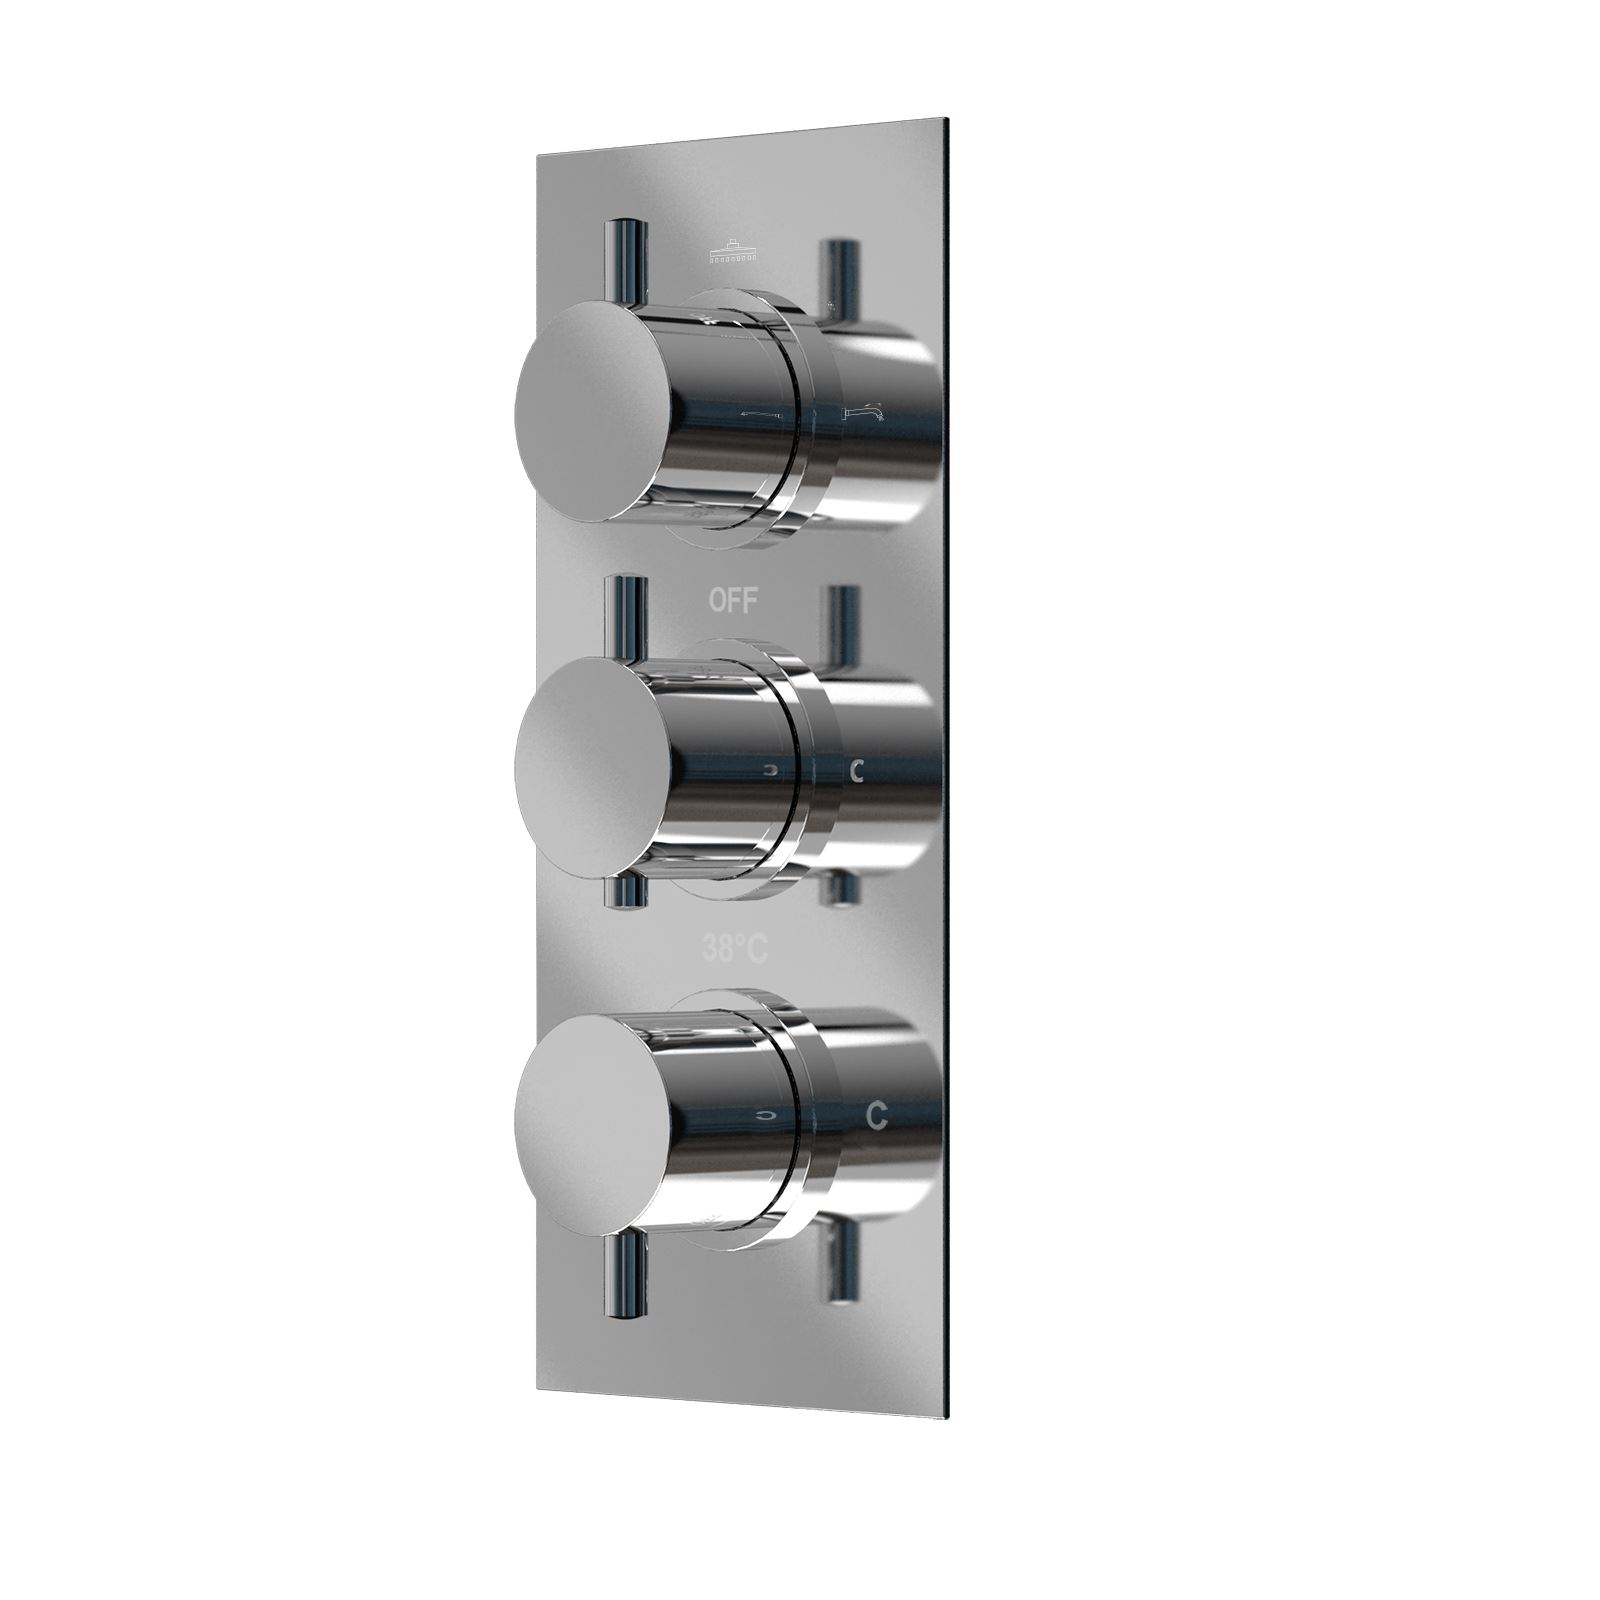 Lilly Square 3 Dial 3 Way Bathroom Concealed Thermostatic